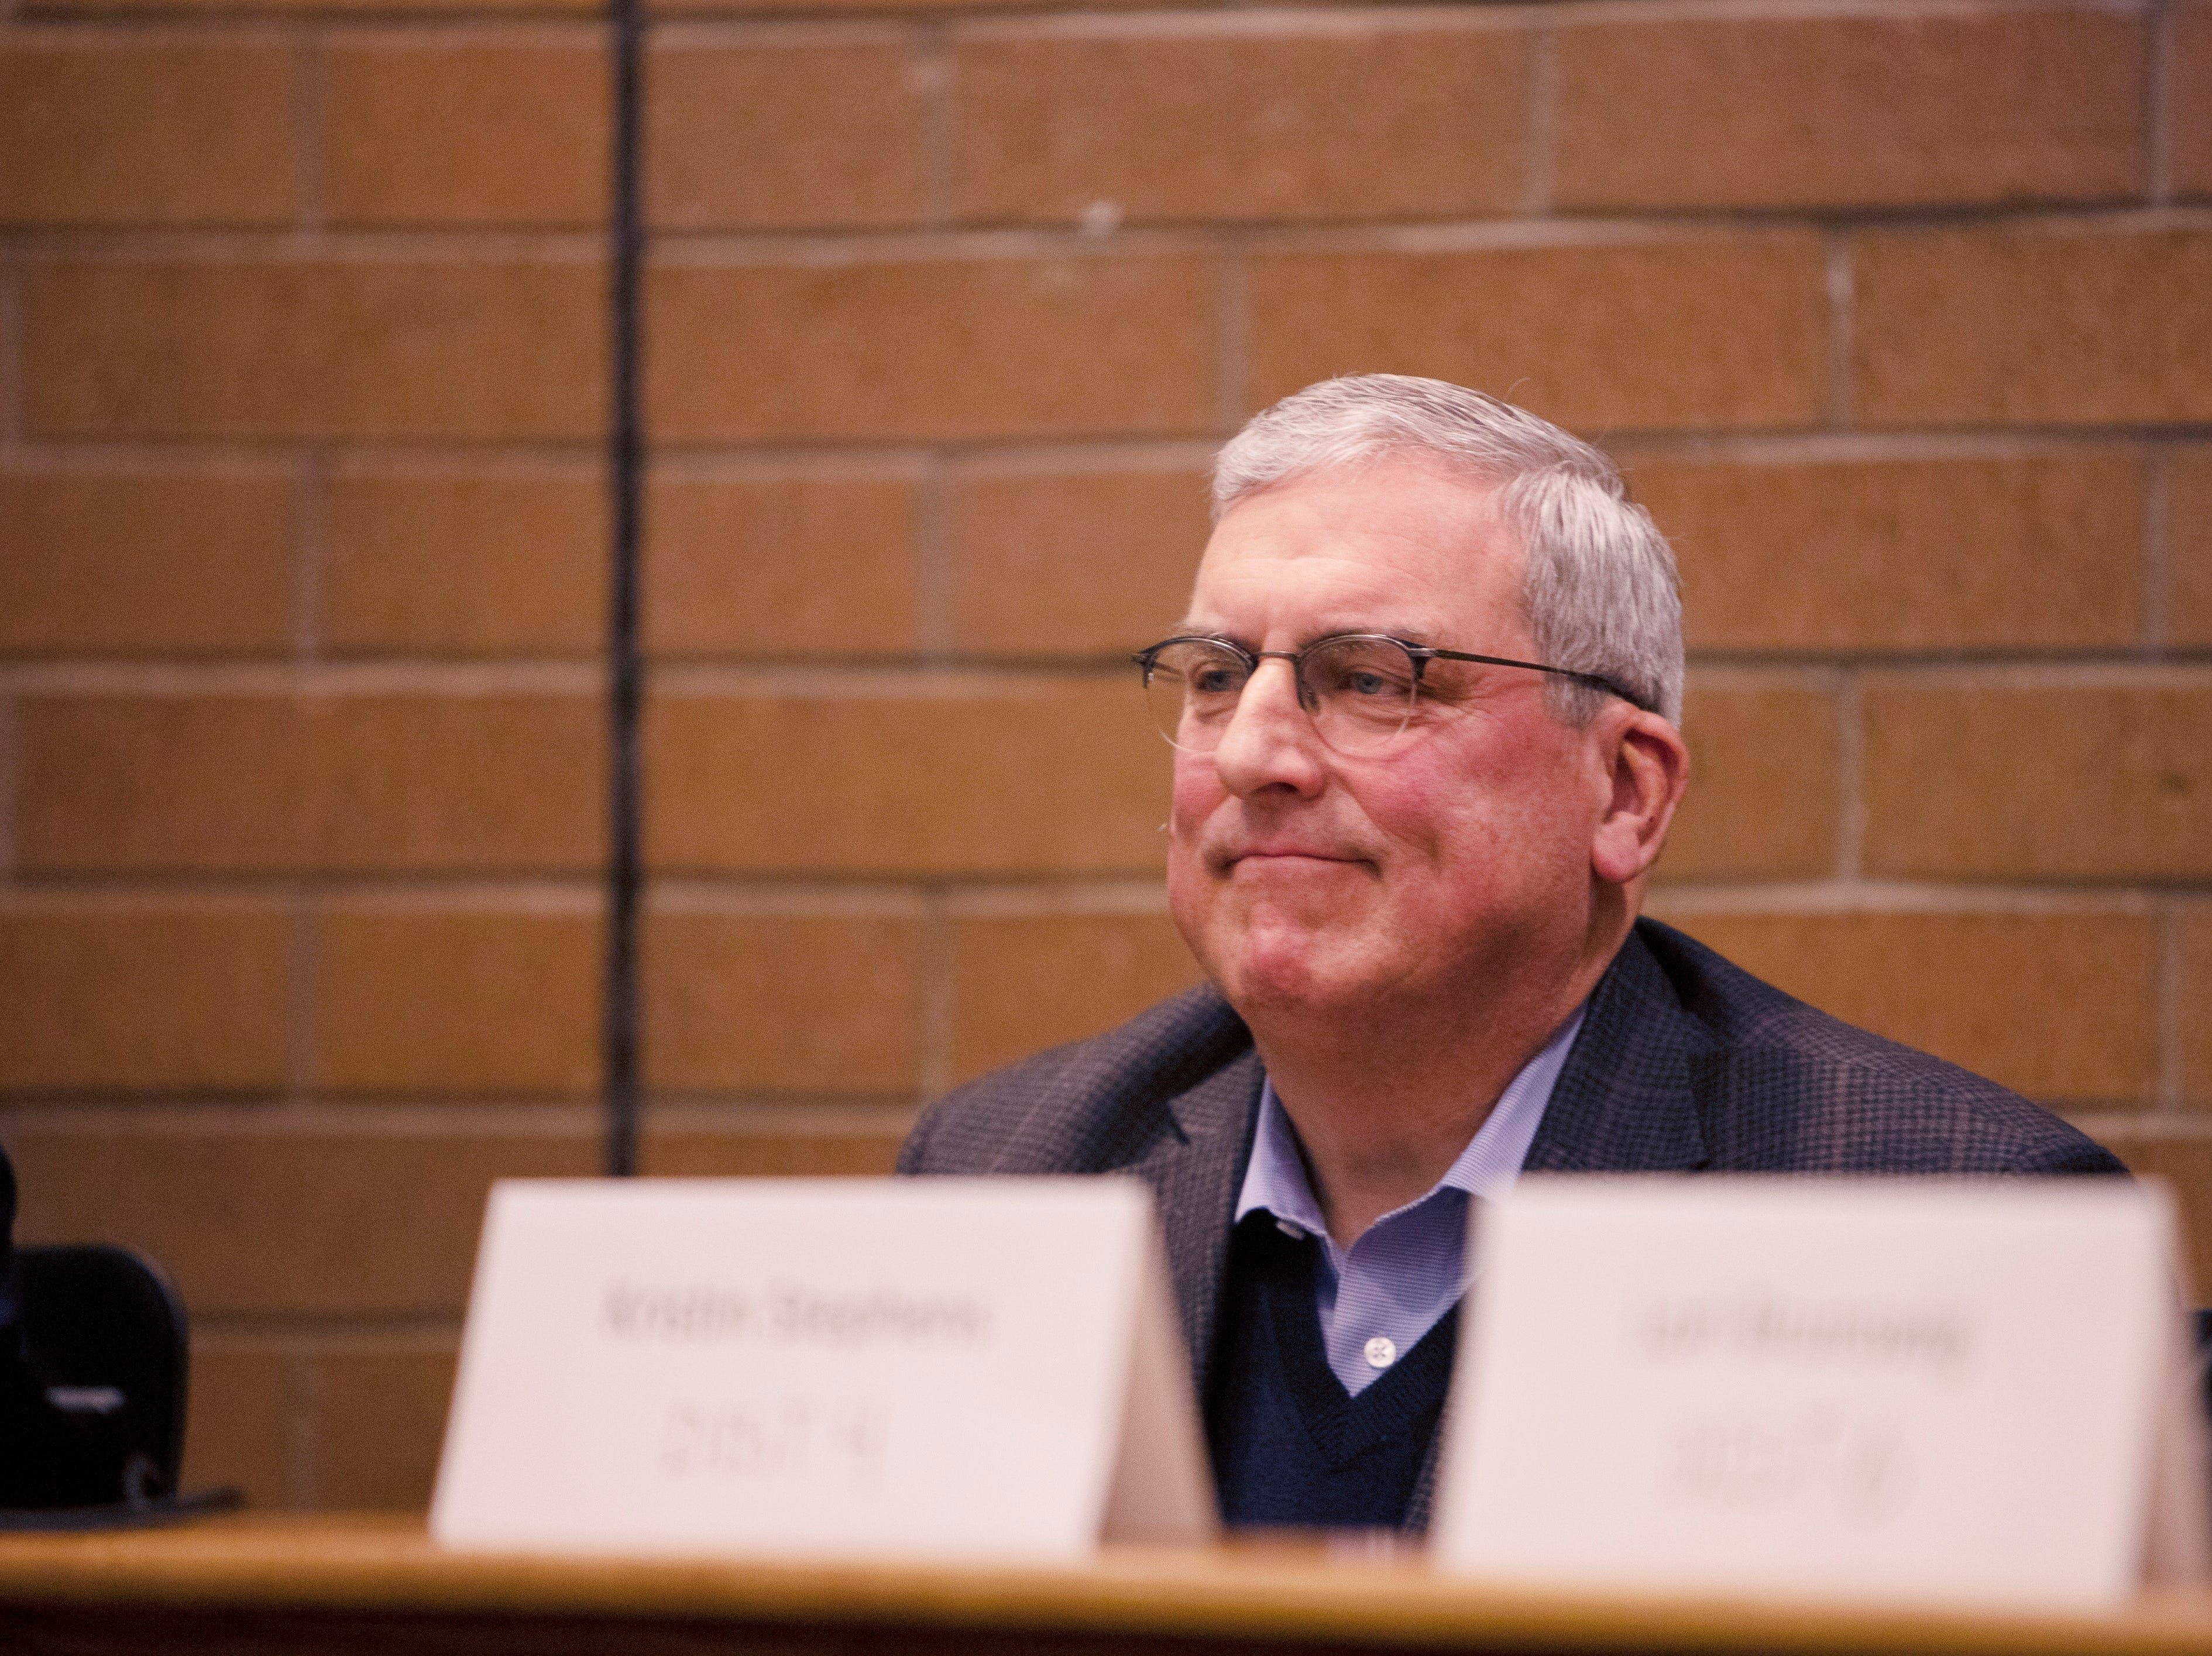 Mayor Wade Troxell participates in the candidate forum hosted by The League of Women Voters of Larimer County at City Hall on March 6.